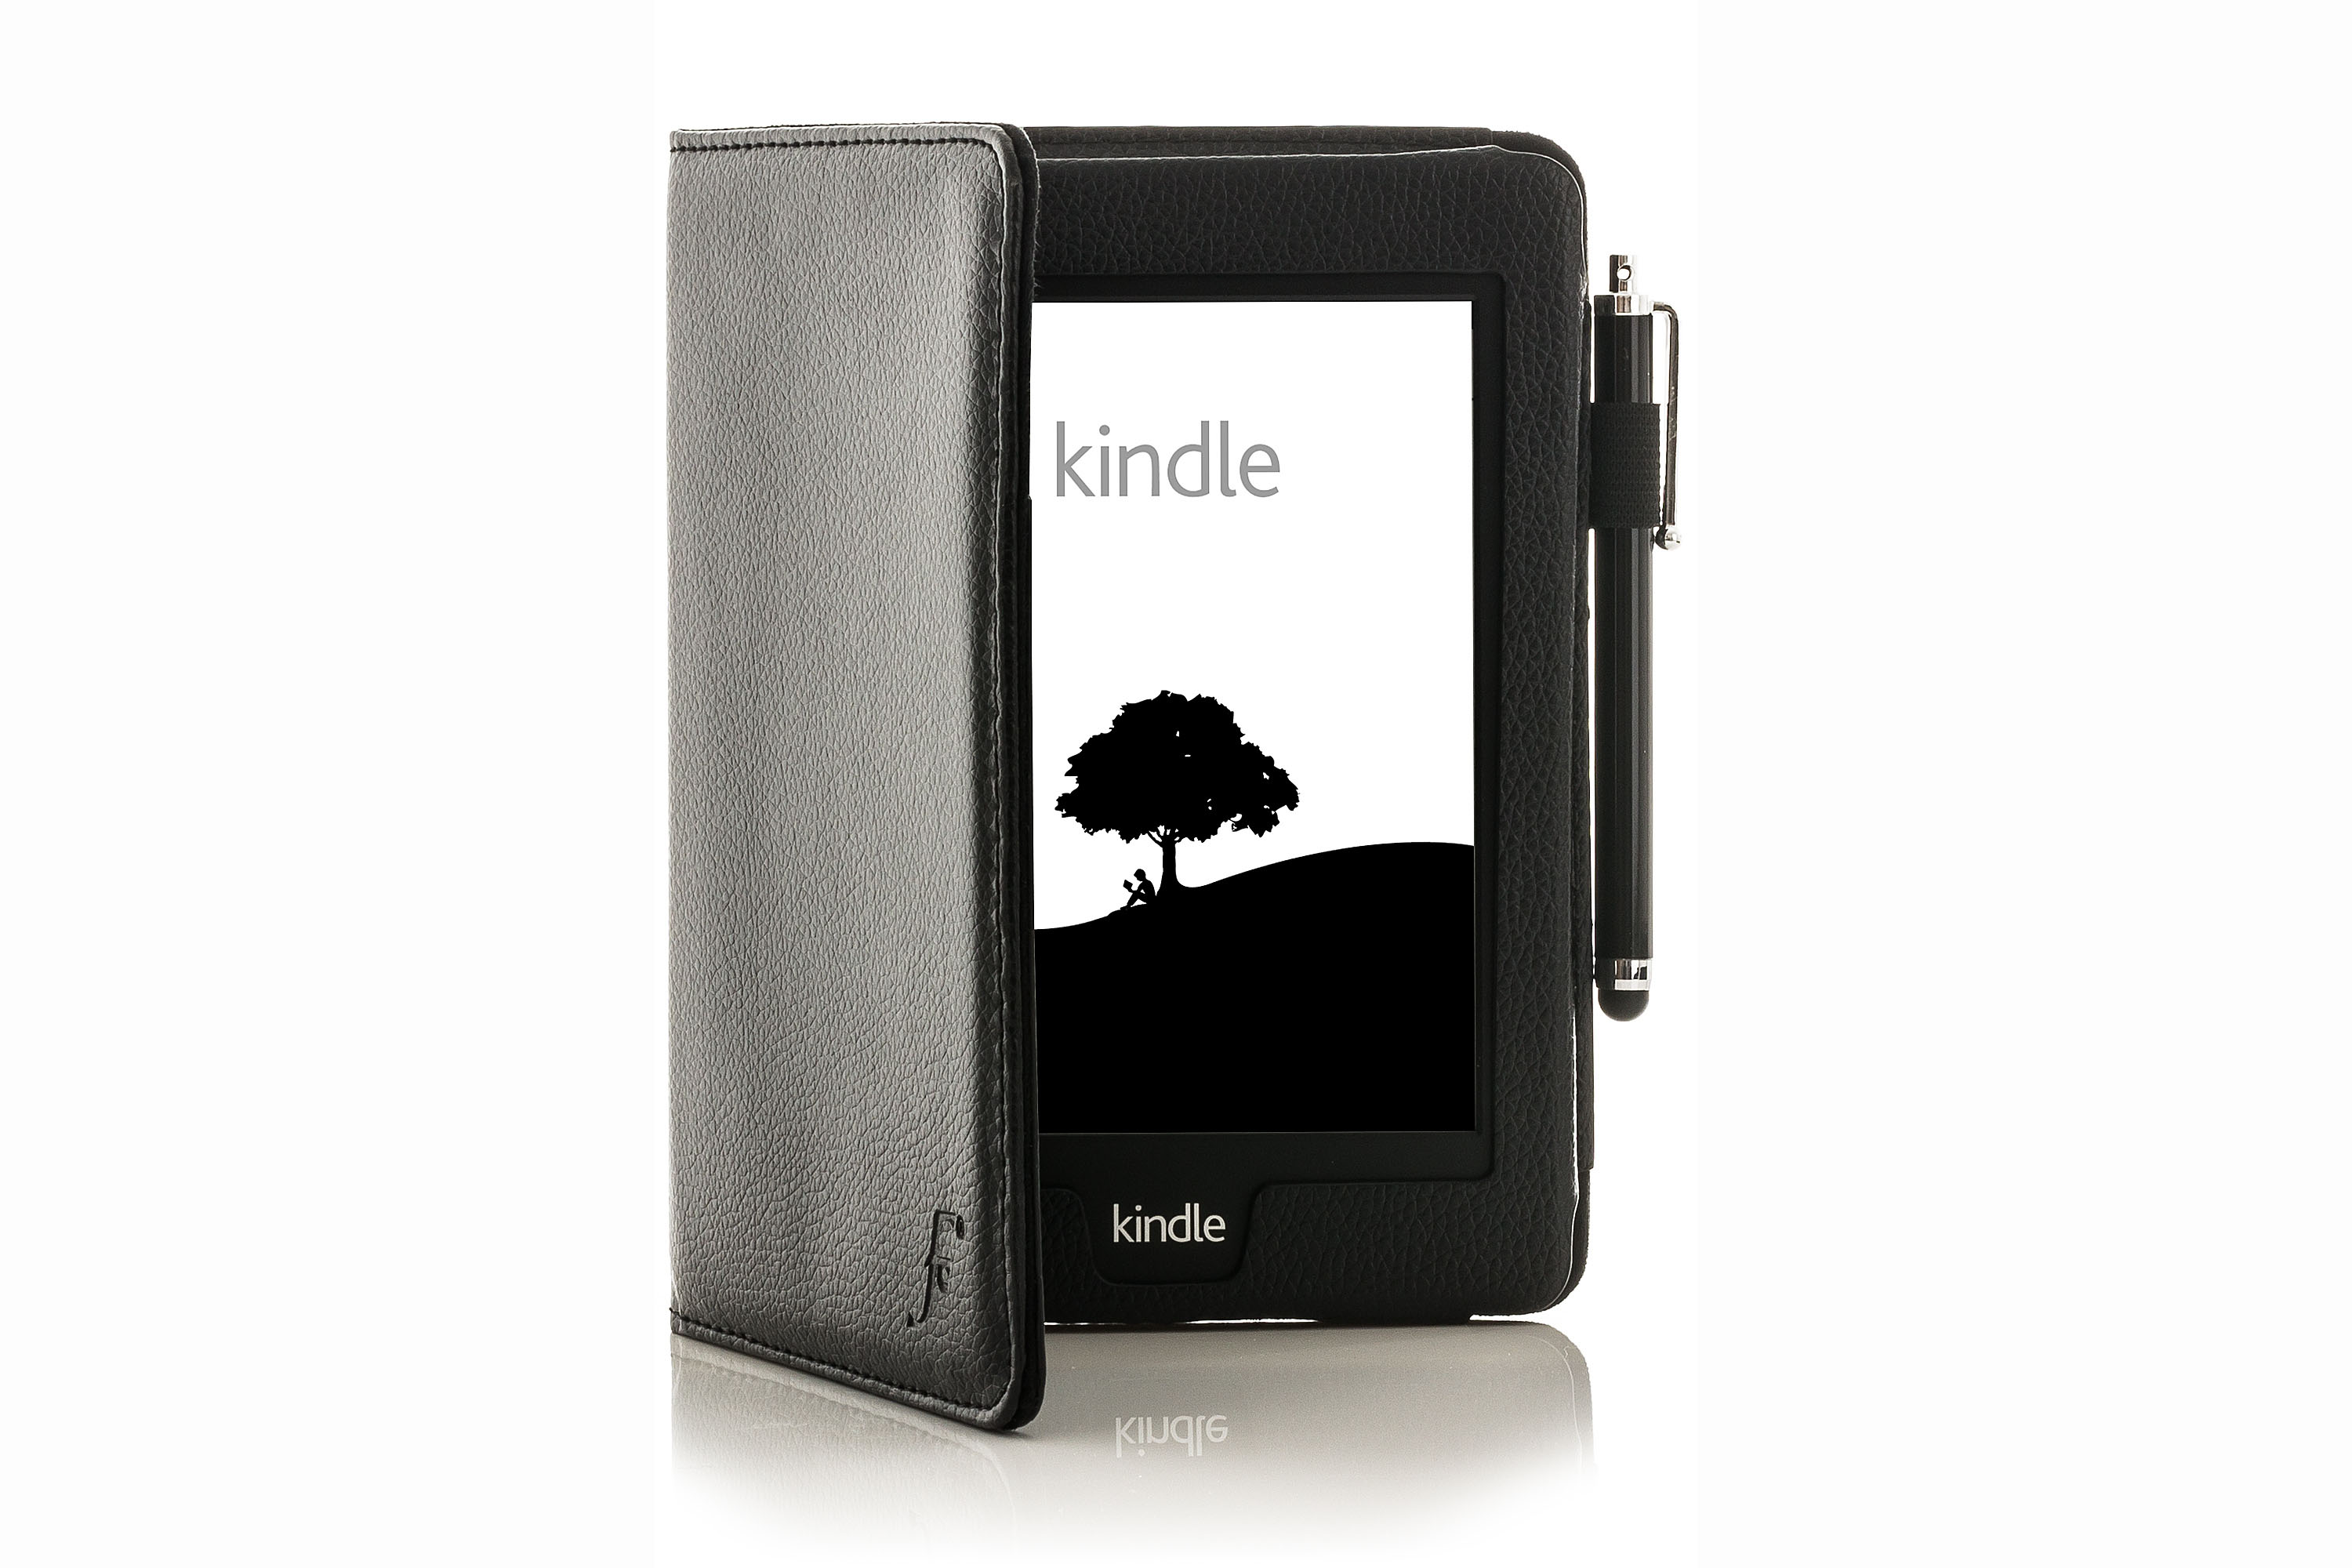 Kindle 2 Case: Leather Strap Smart Case Cover For Amazon Kindle